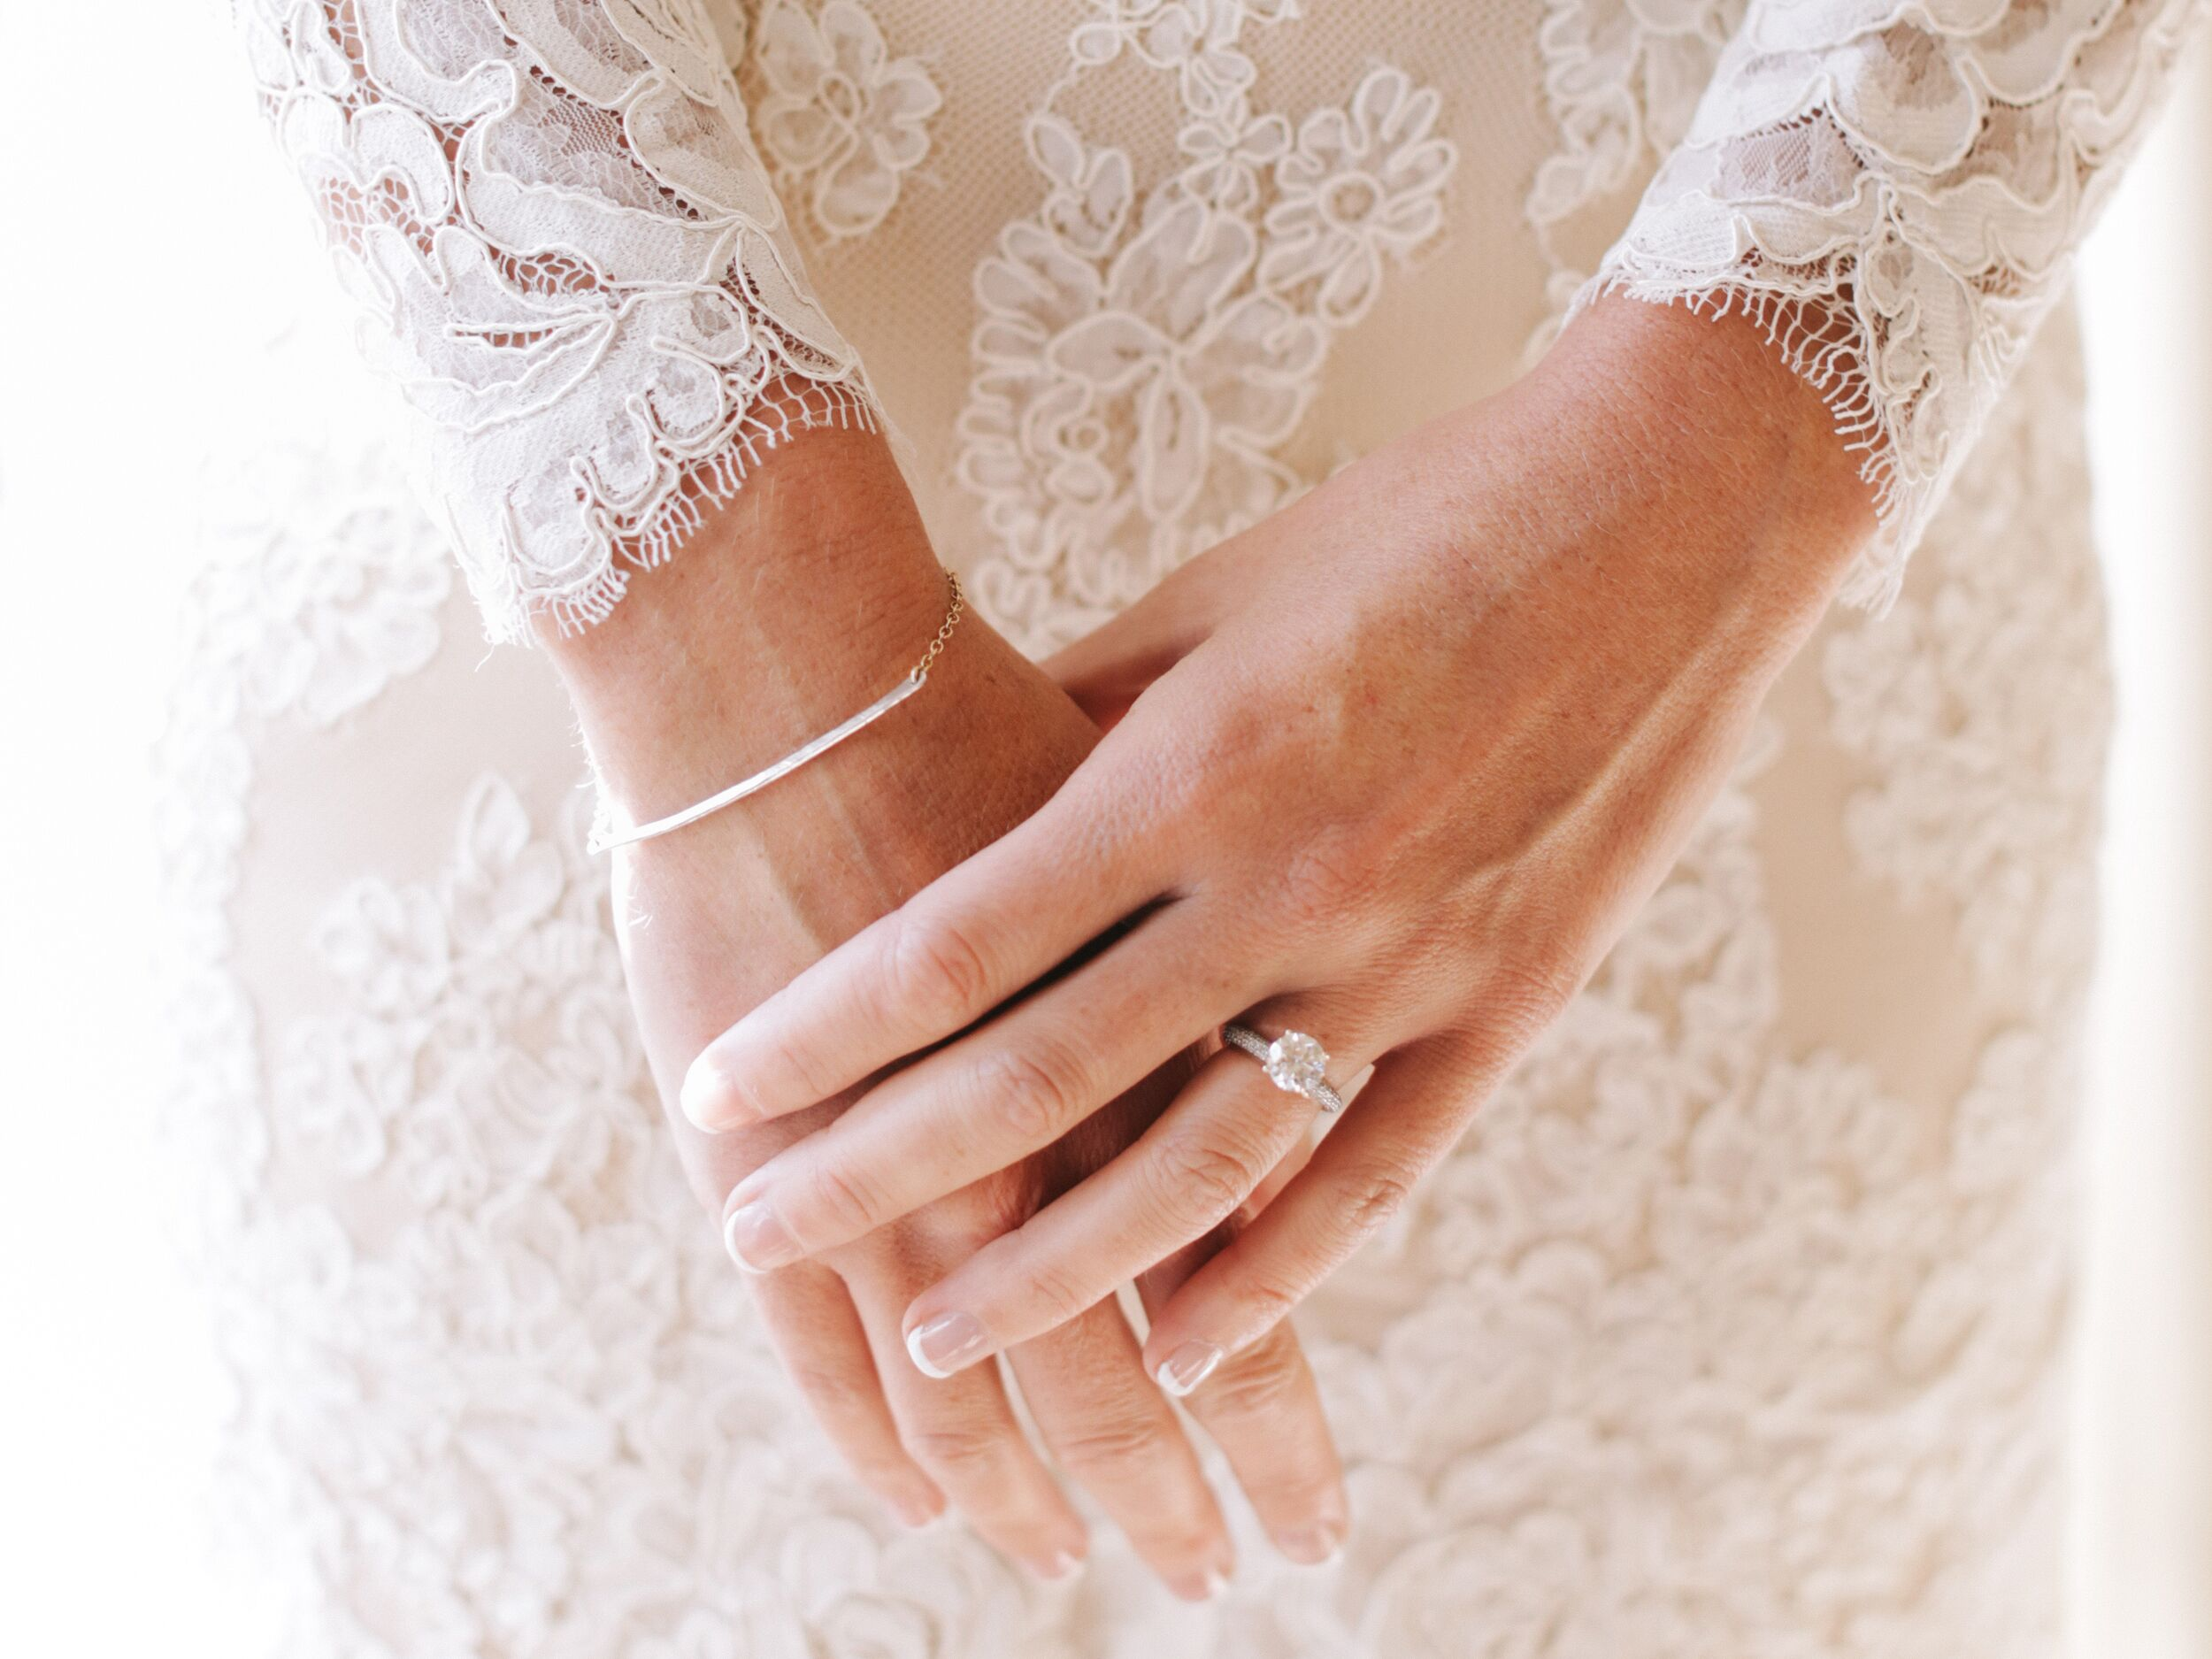 wedding rings: what's the wedding ring etiquette?